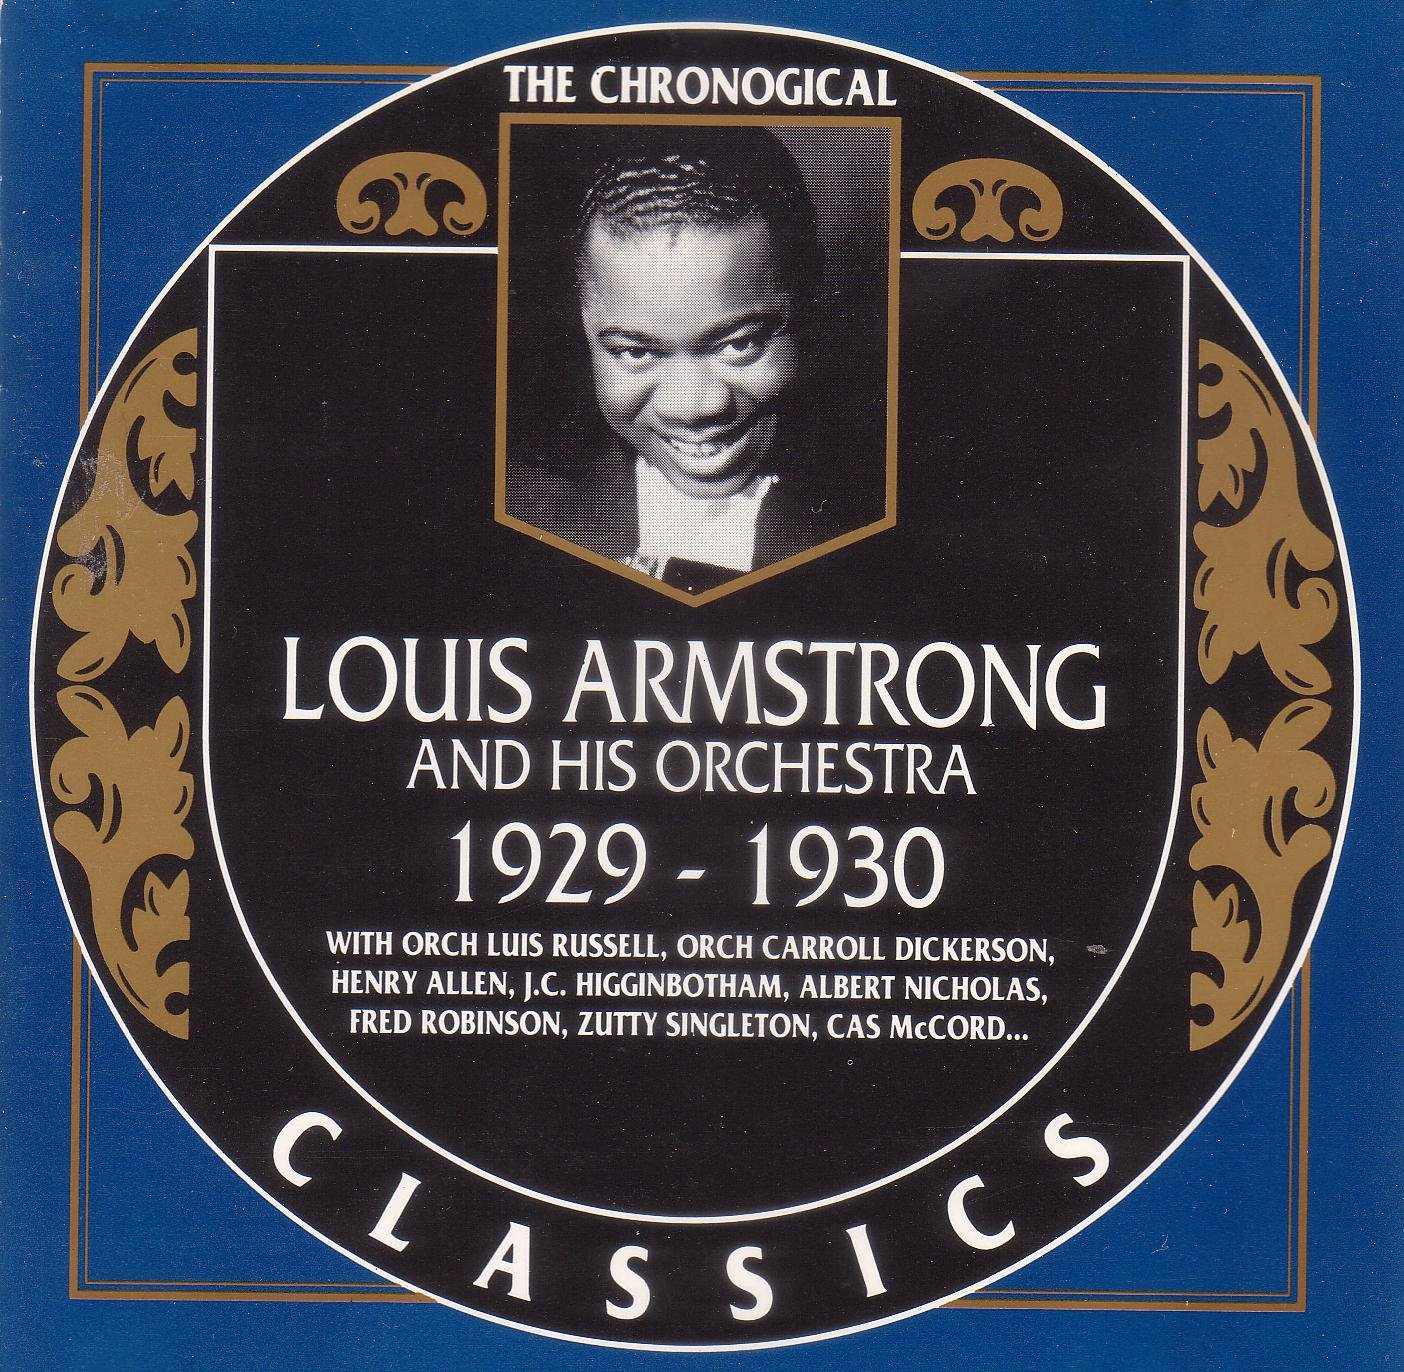 Louis Armstrong 1929-1930